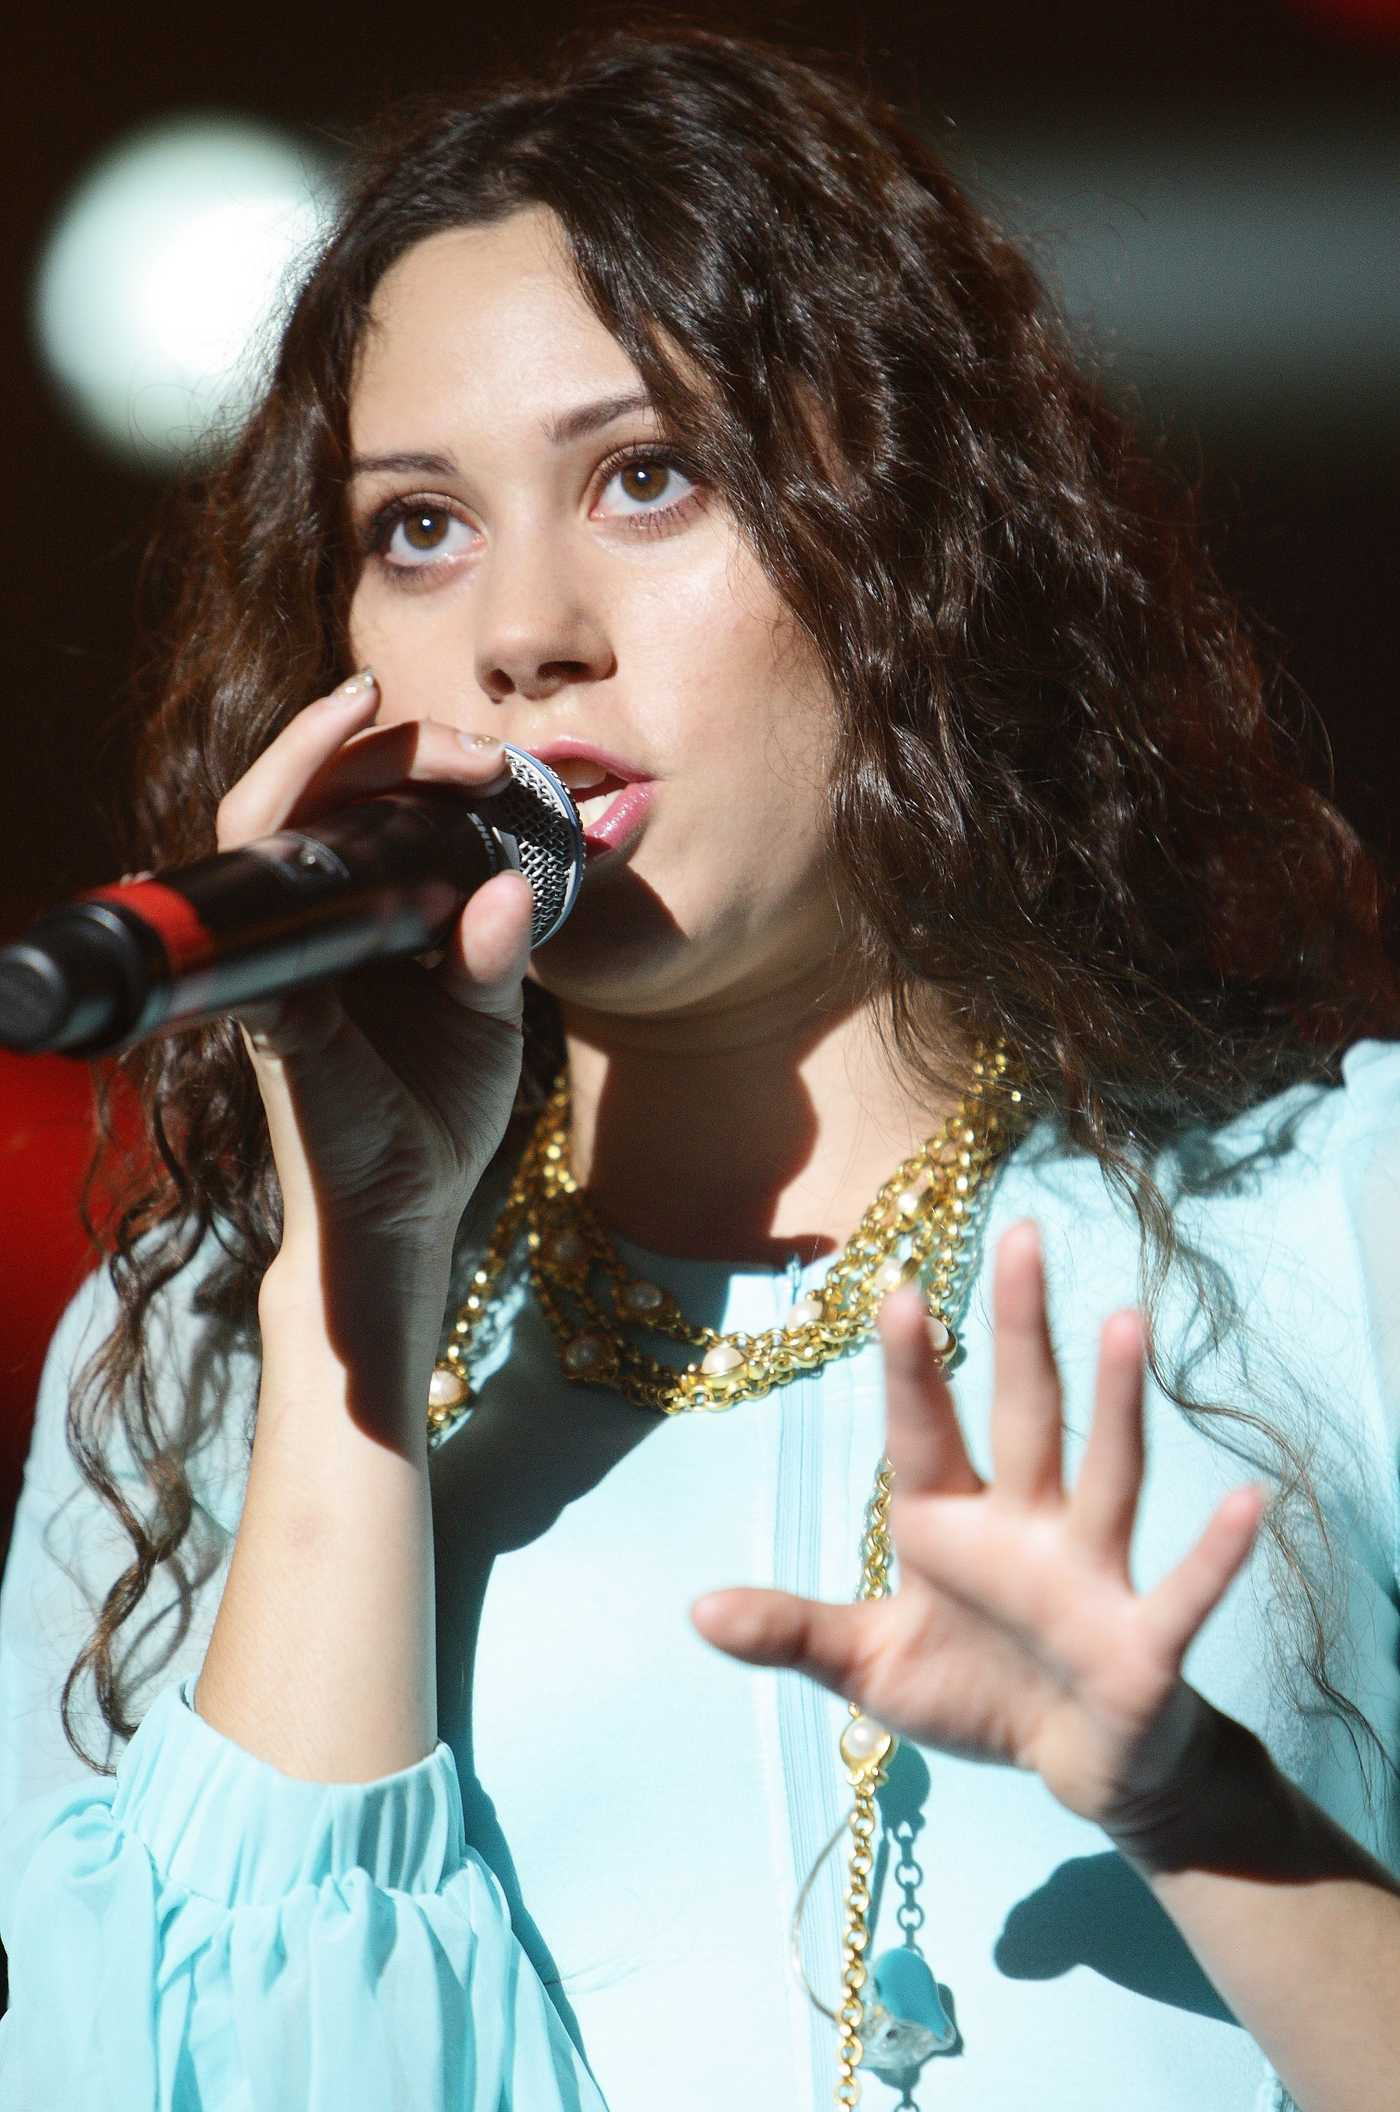 Eliza Doolittle Performs During Girl Guiding UK BIg Gig